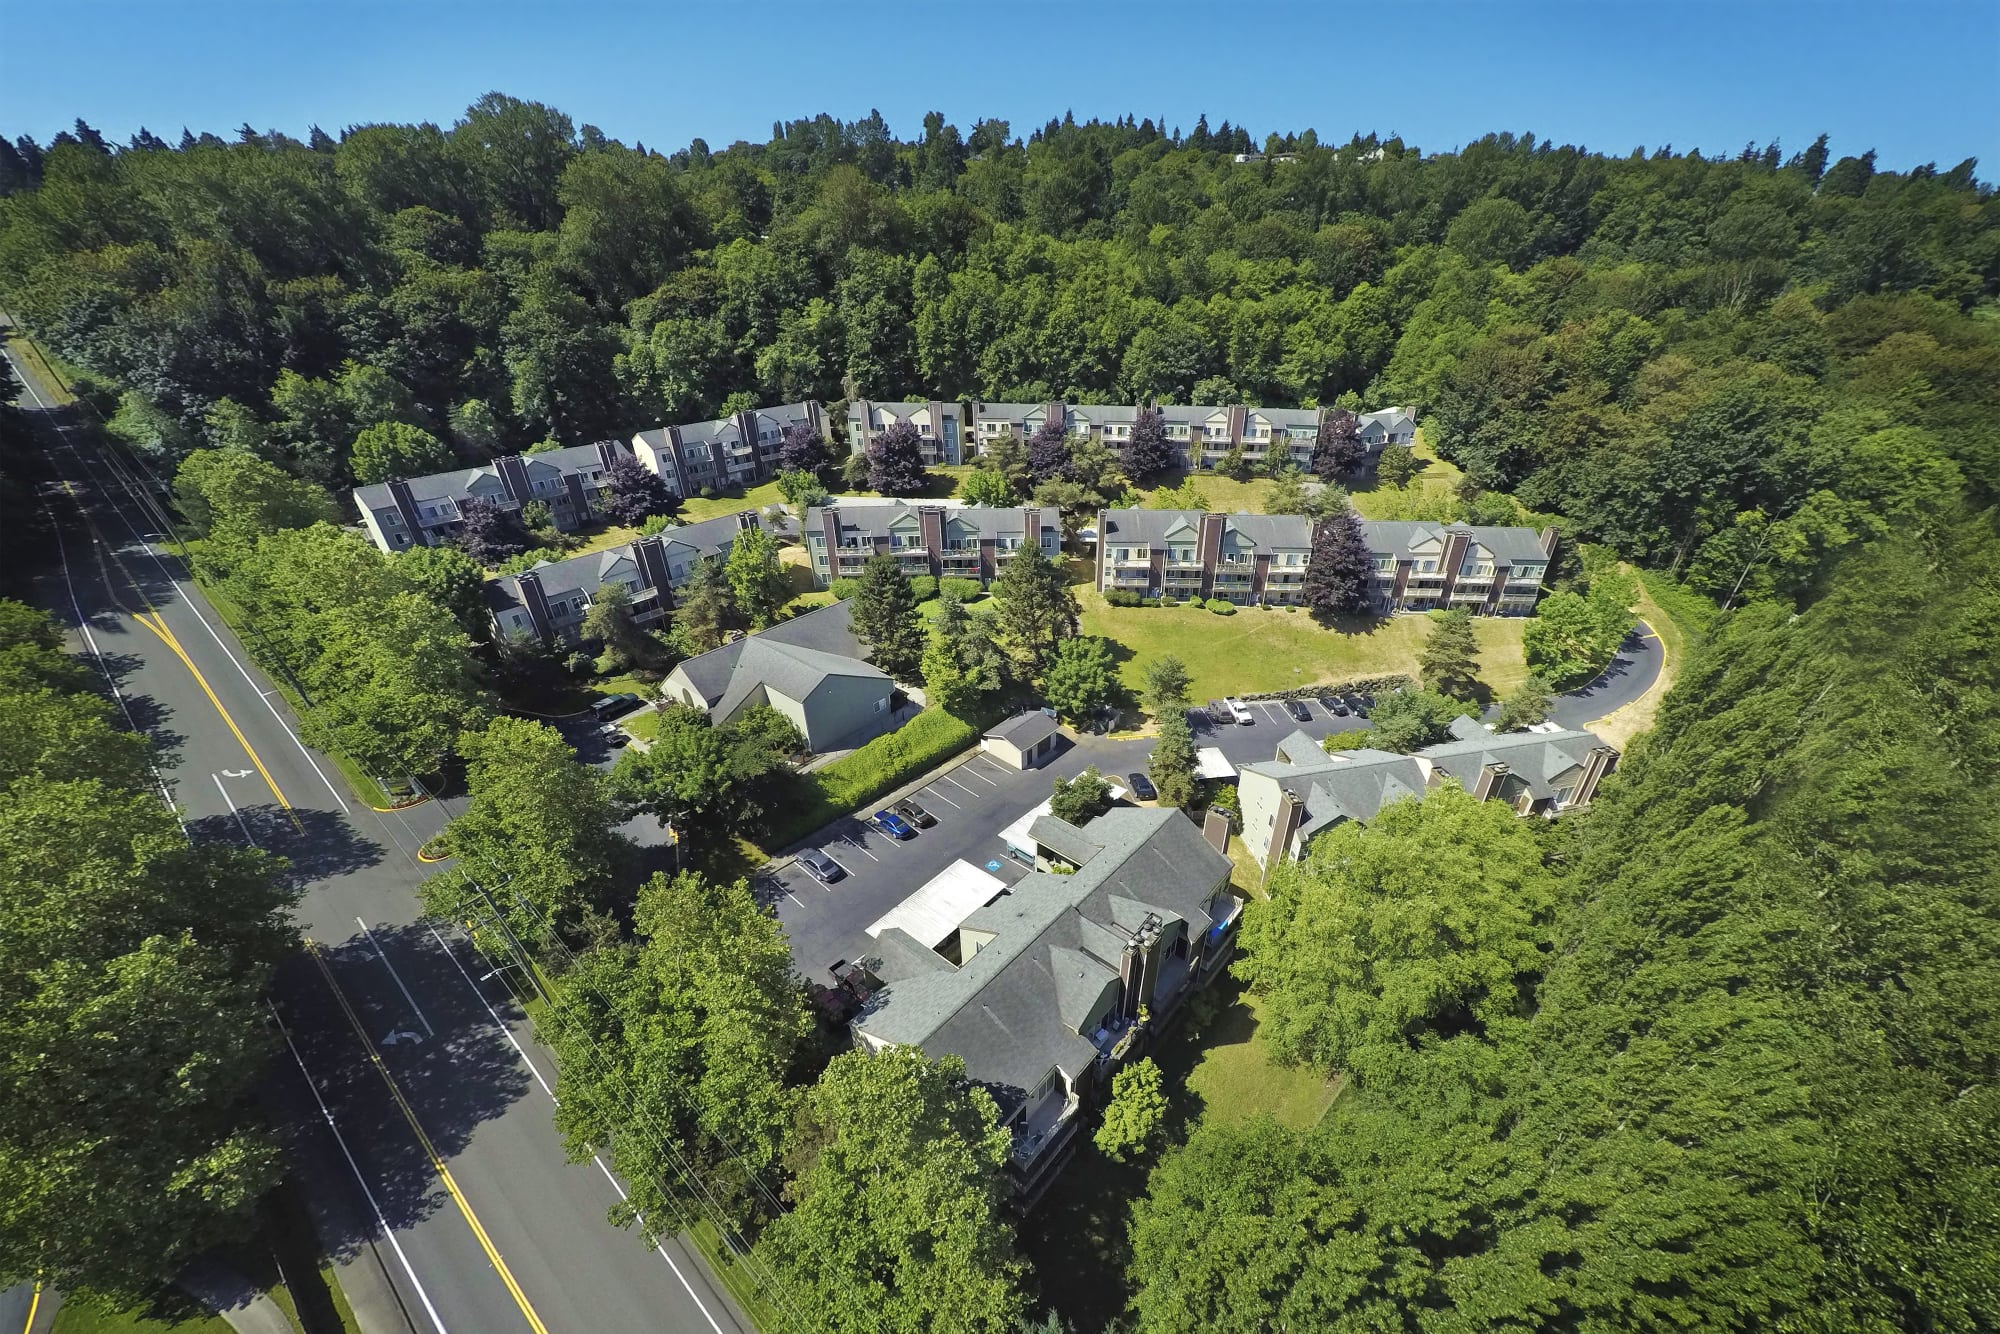 Aerial view of the property and surrounding area at Park South Apartments in Seattle, Washington